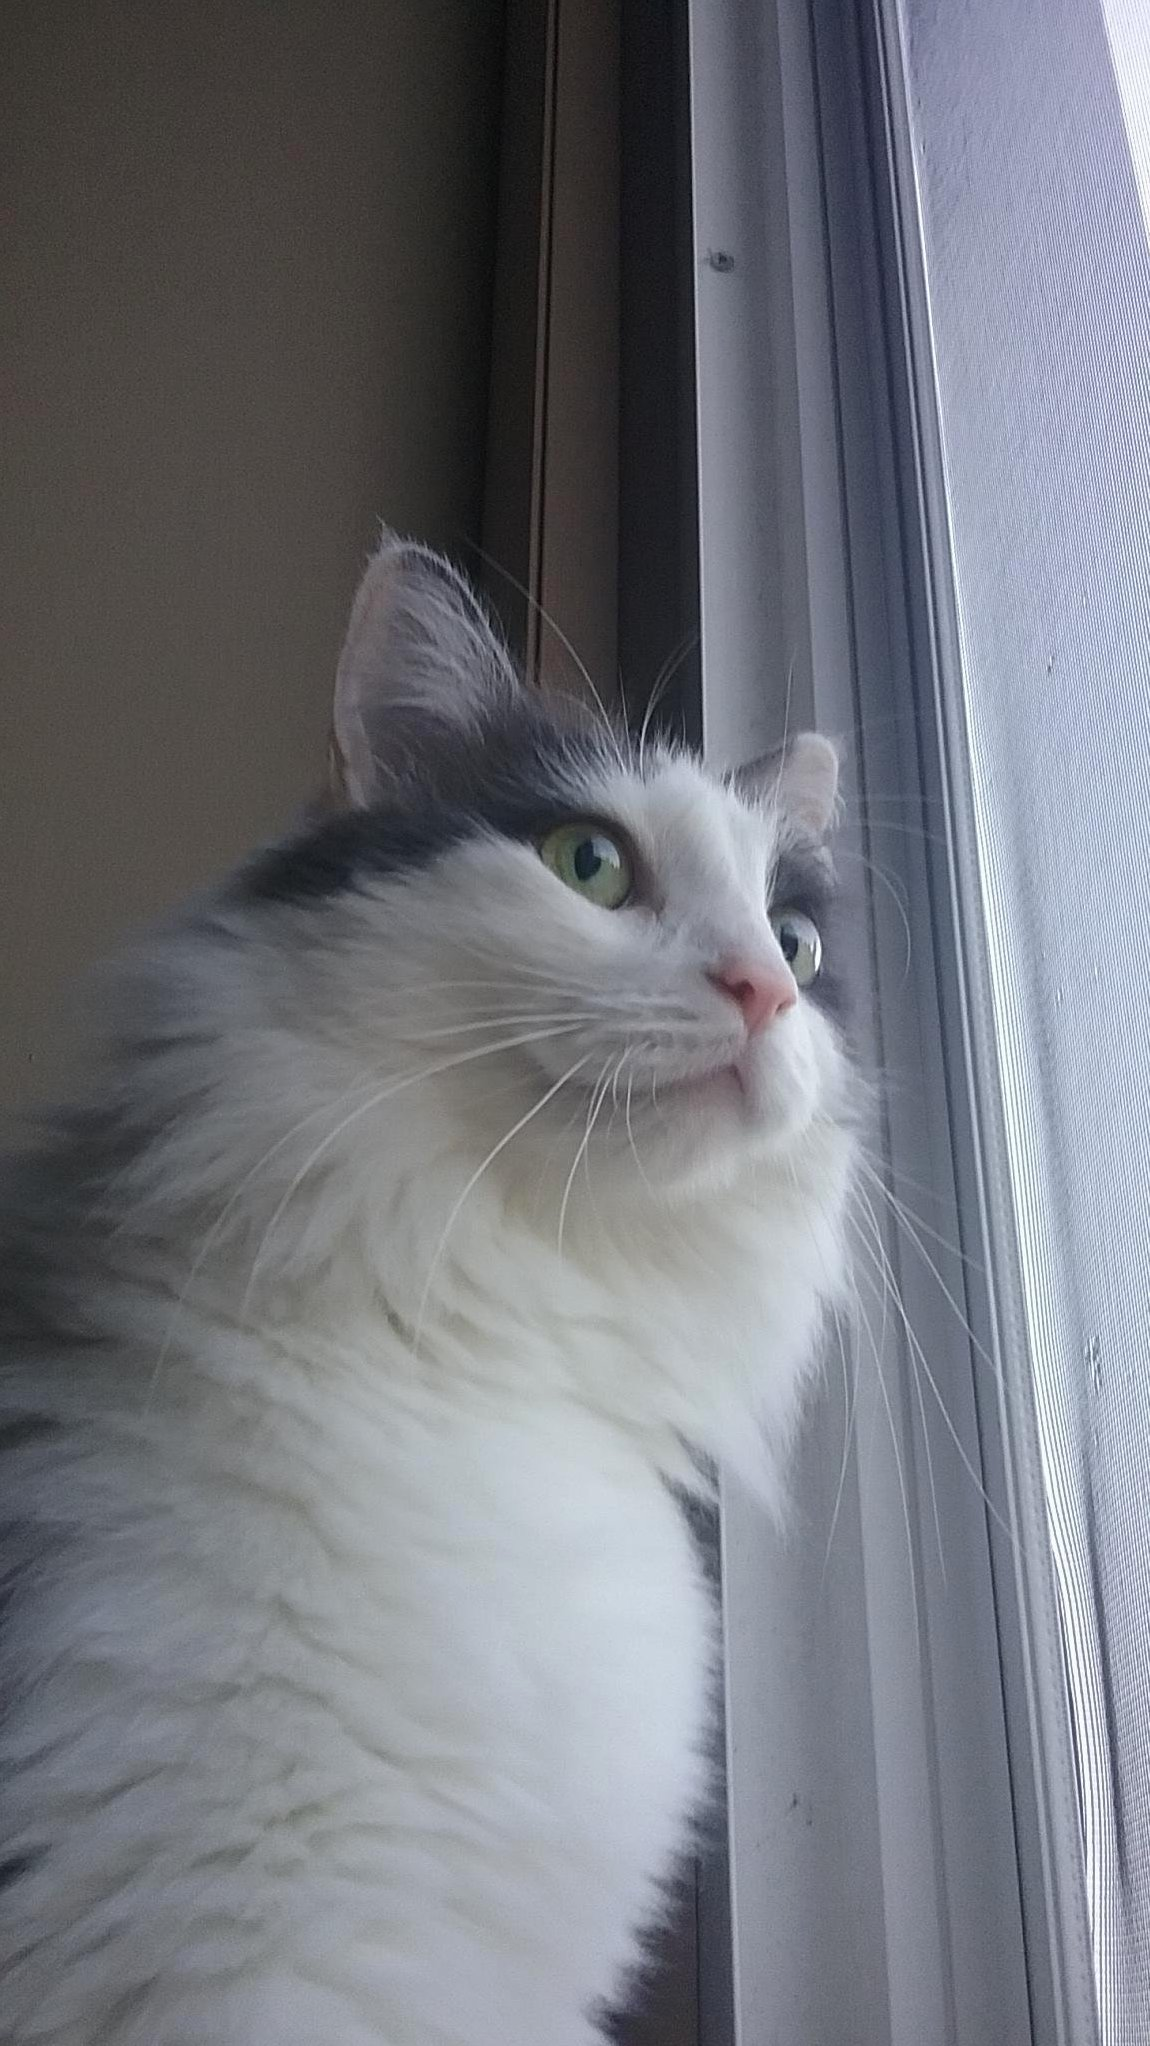 Kizzy loves looking out the window